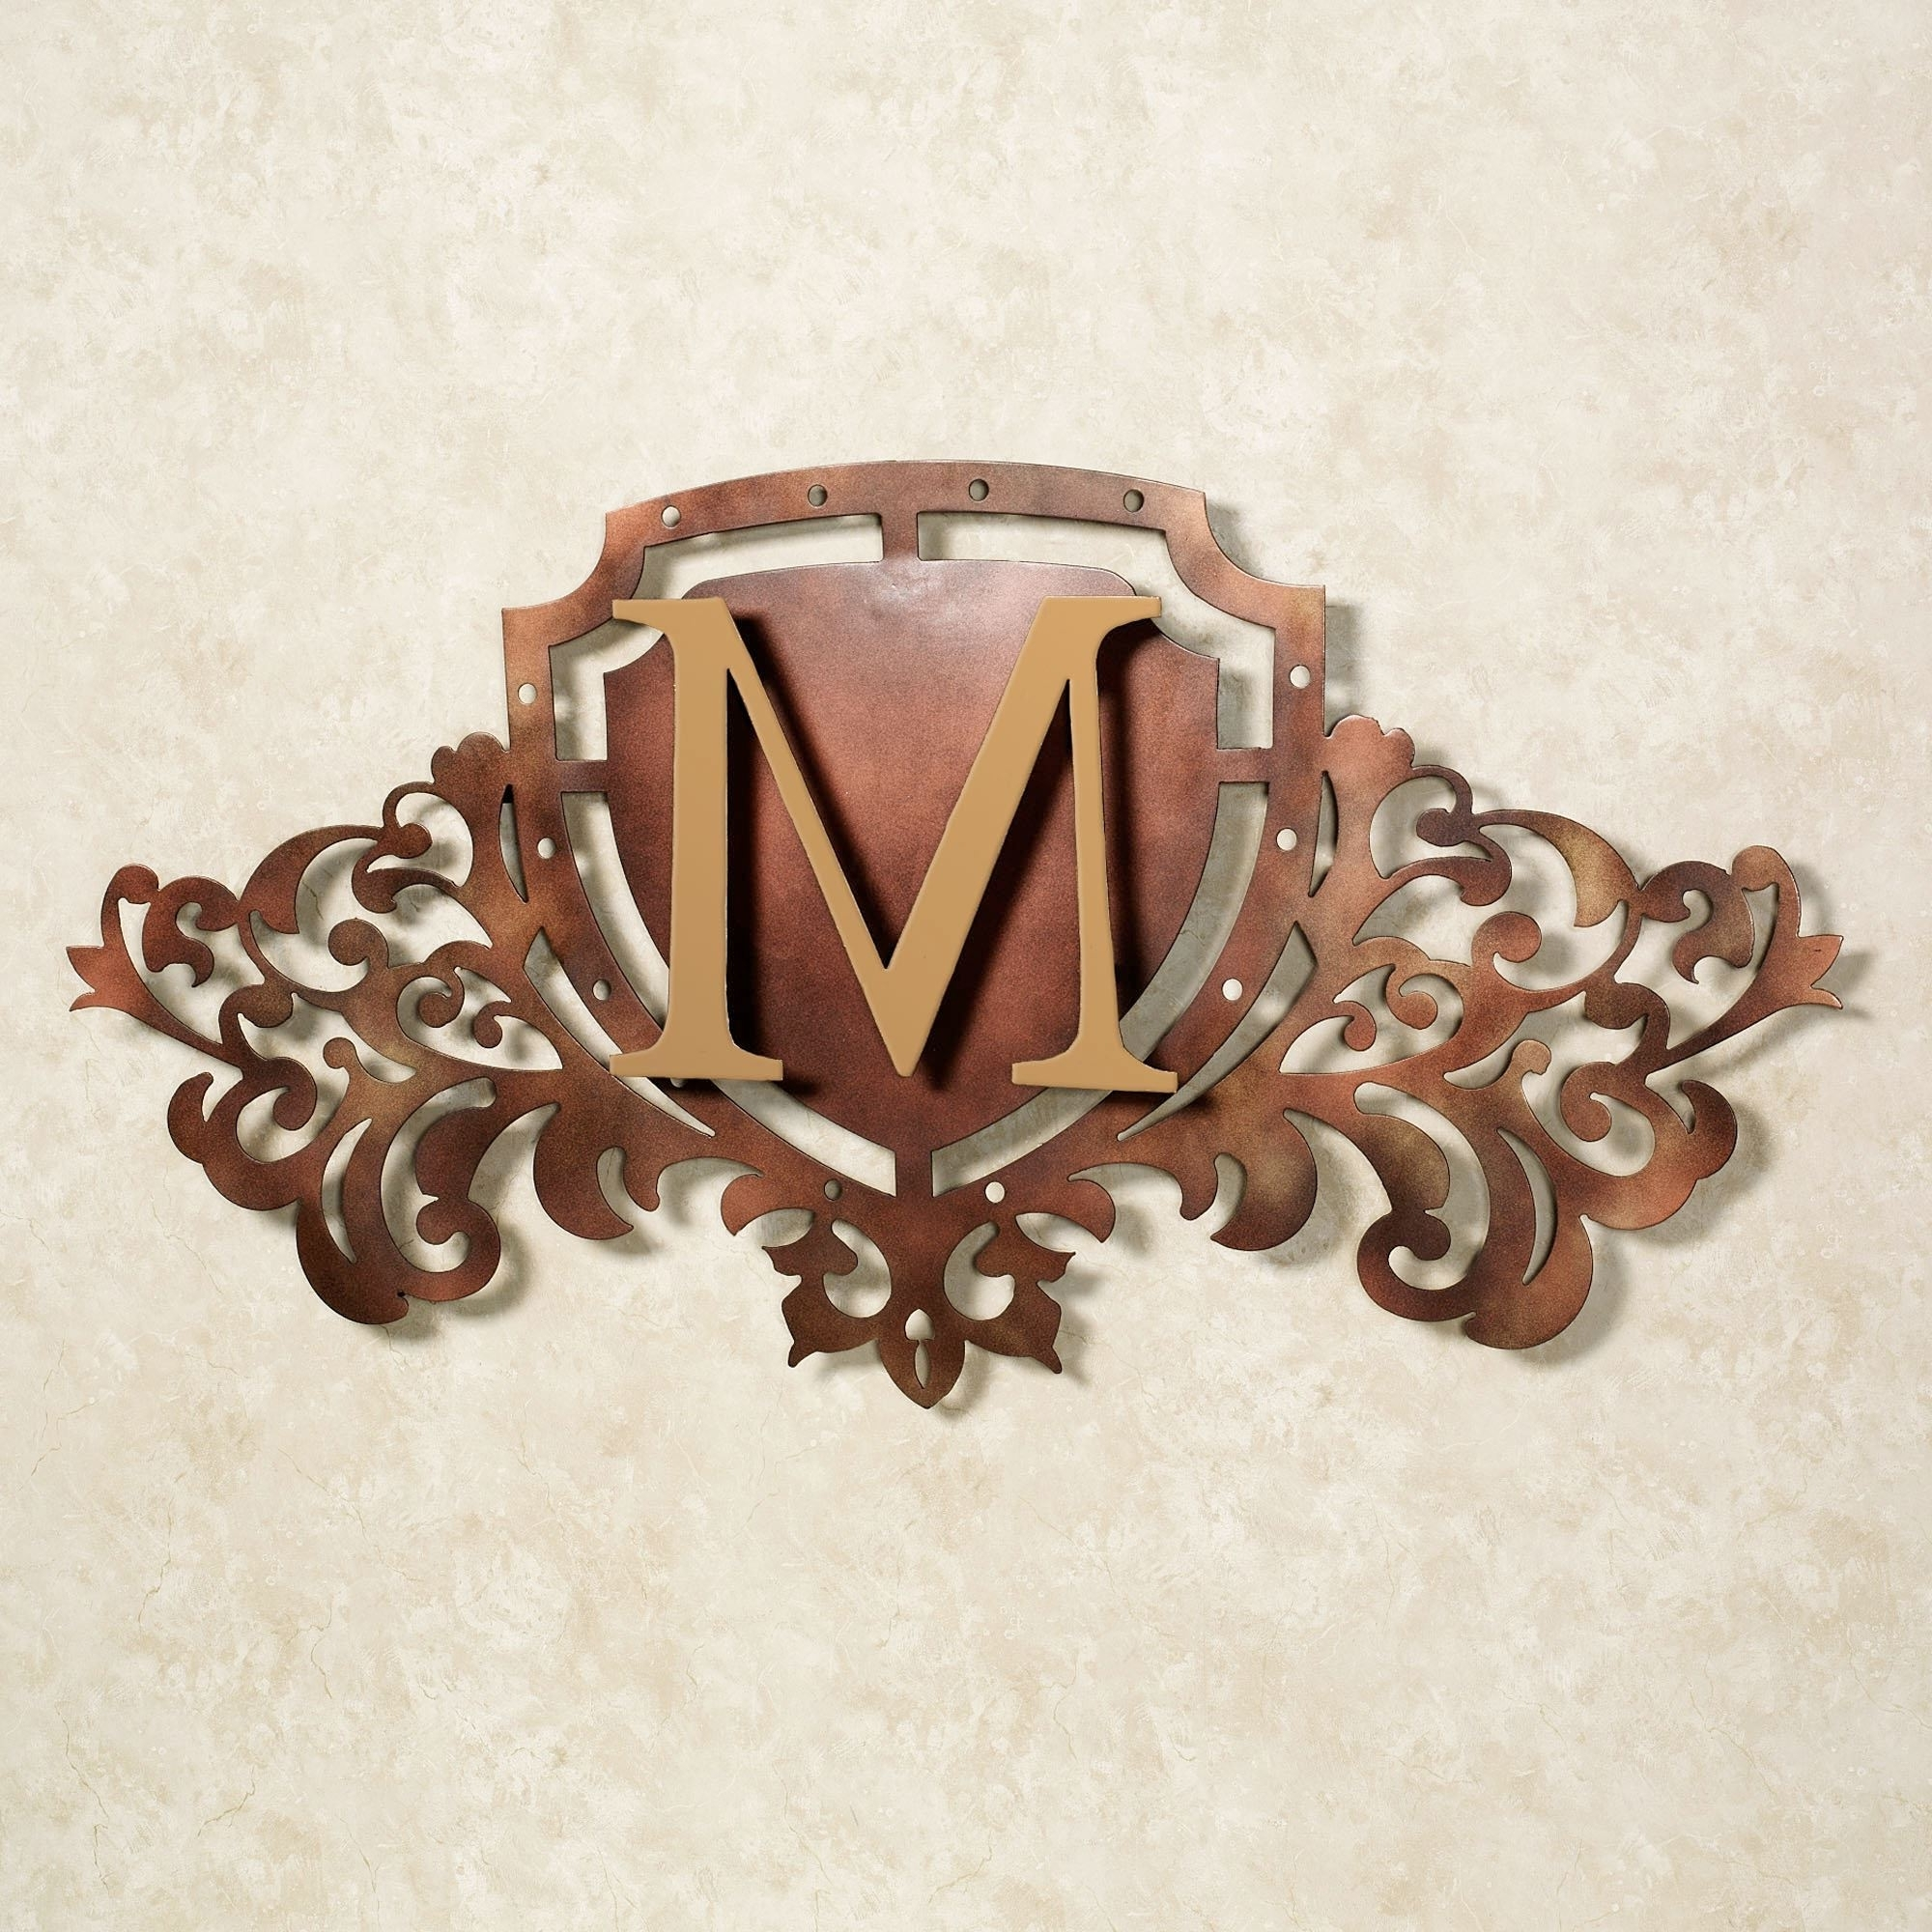 Latest Generations Bronze Monogram Crest Metal Wall Art Sign Throughout Bronze Wall Art (View 12 of 20)